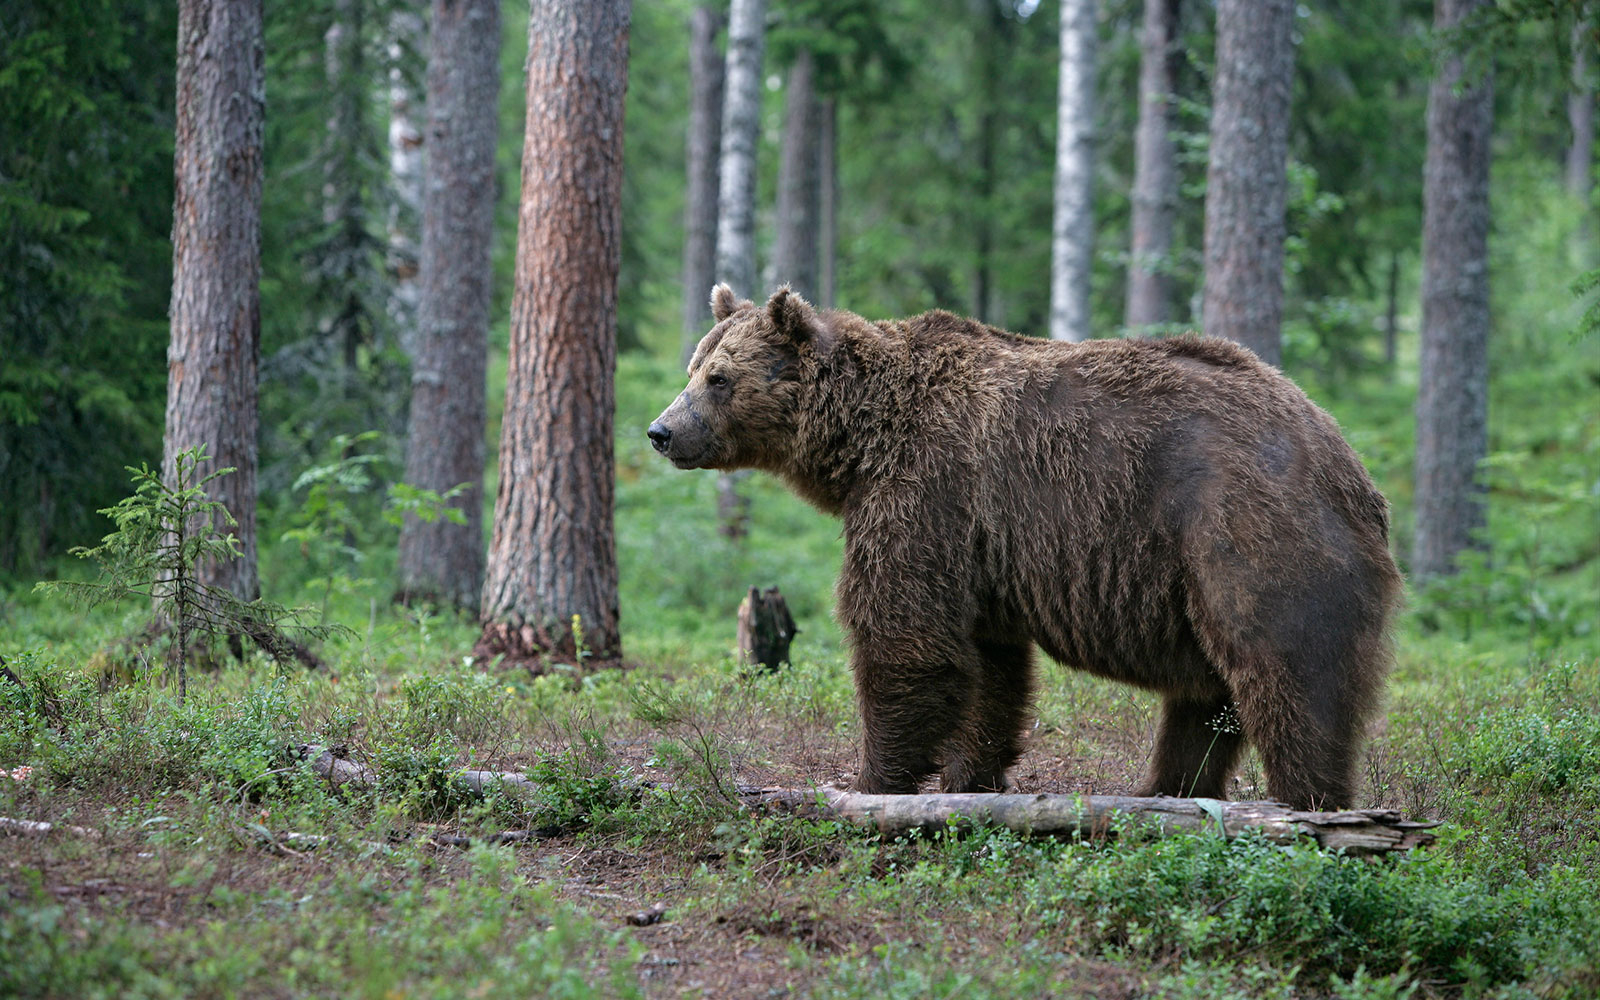 BROWNBEARCENTRE0815.jpg